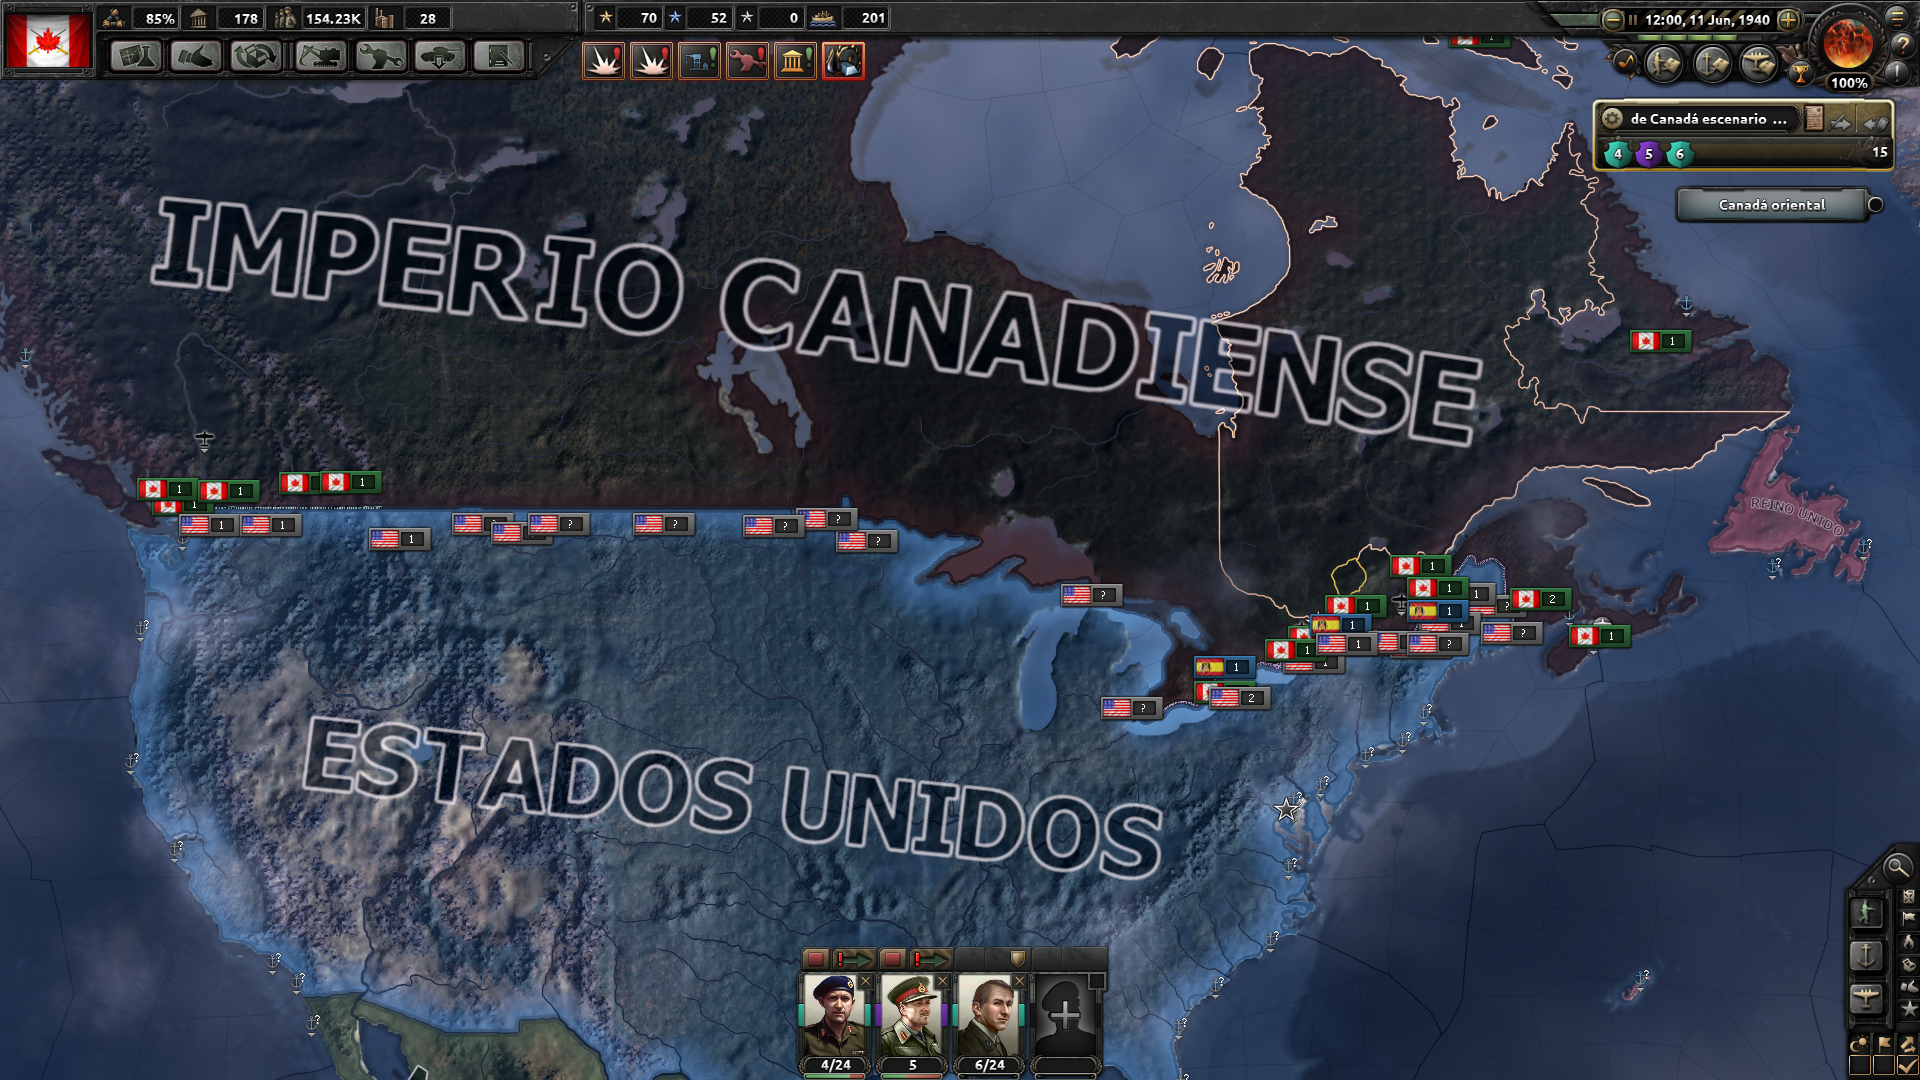 imperio canadiense